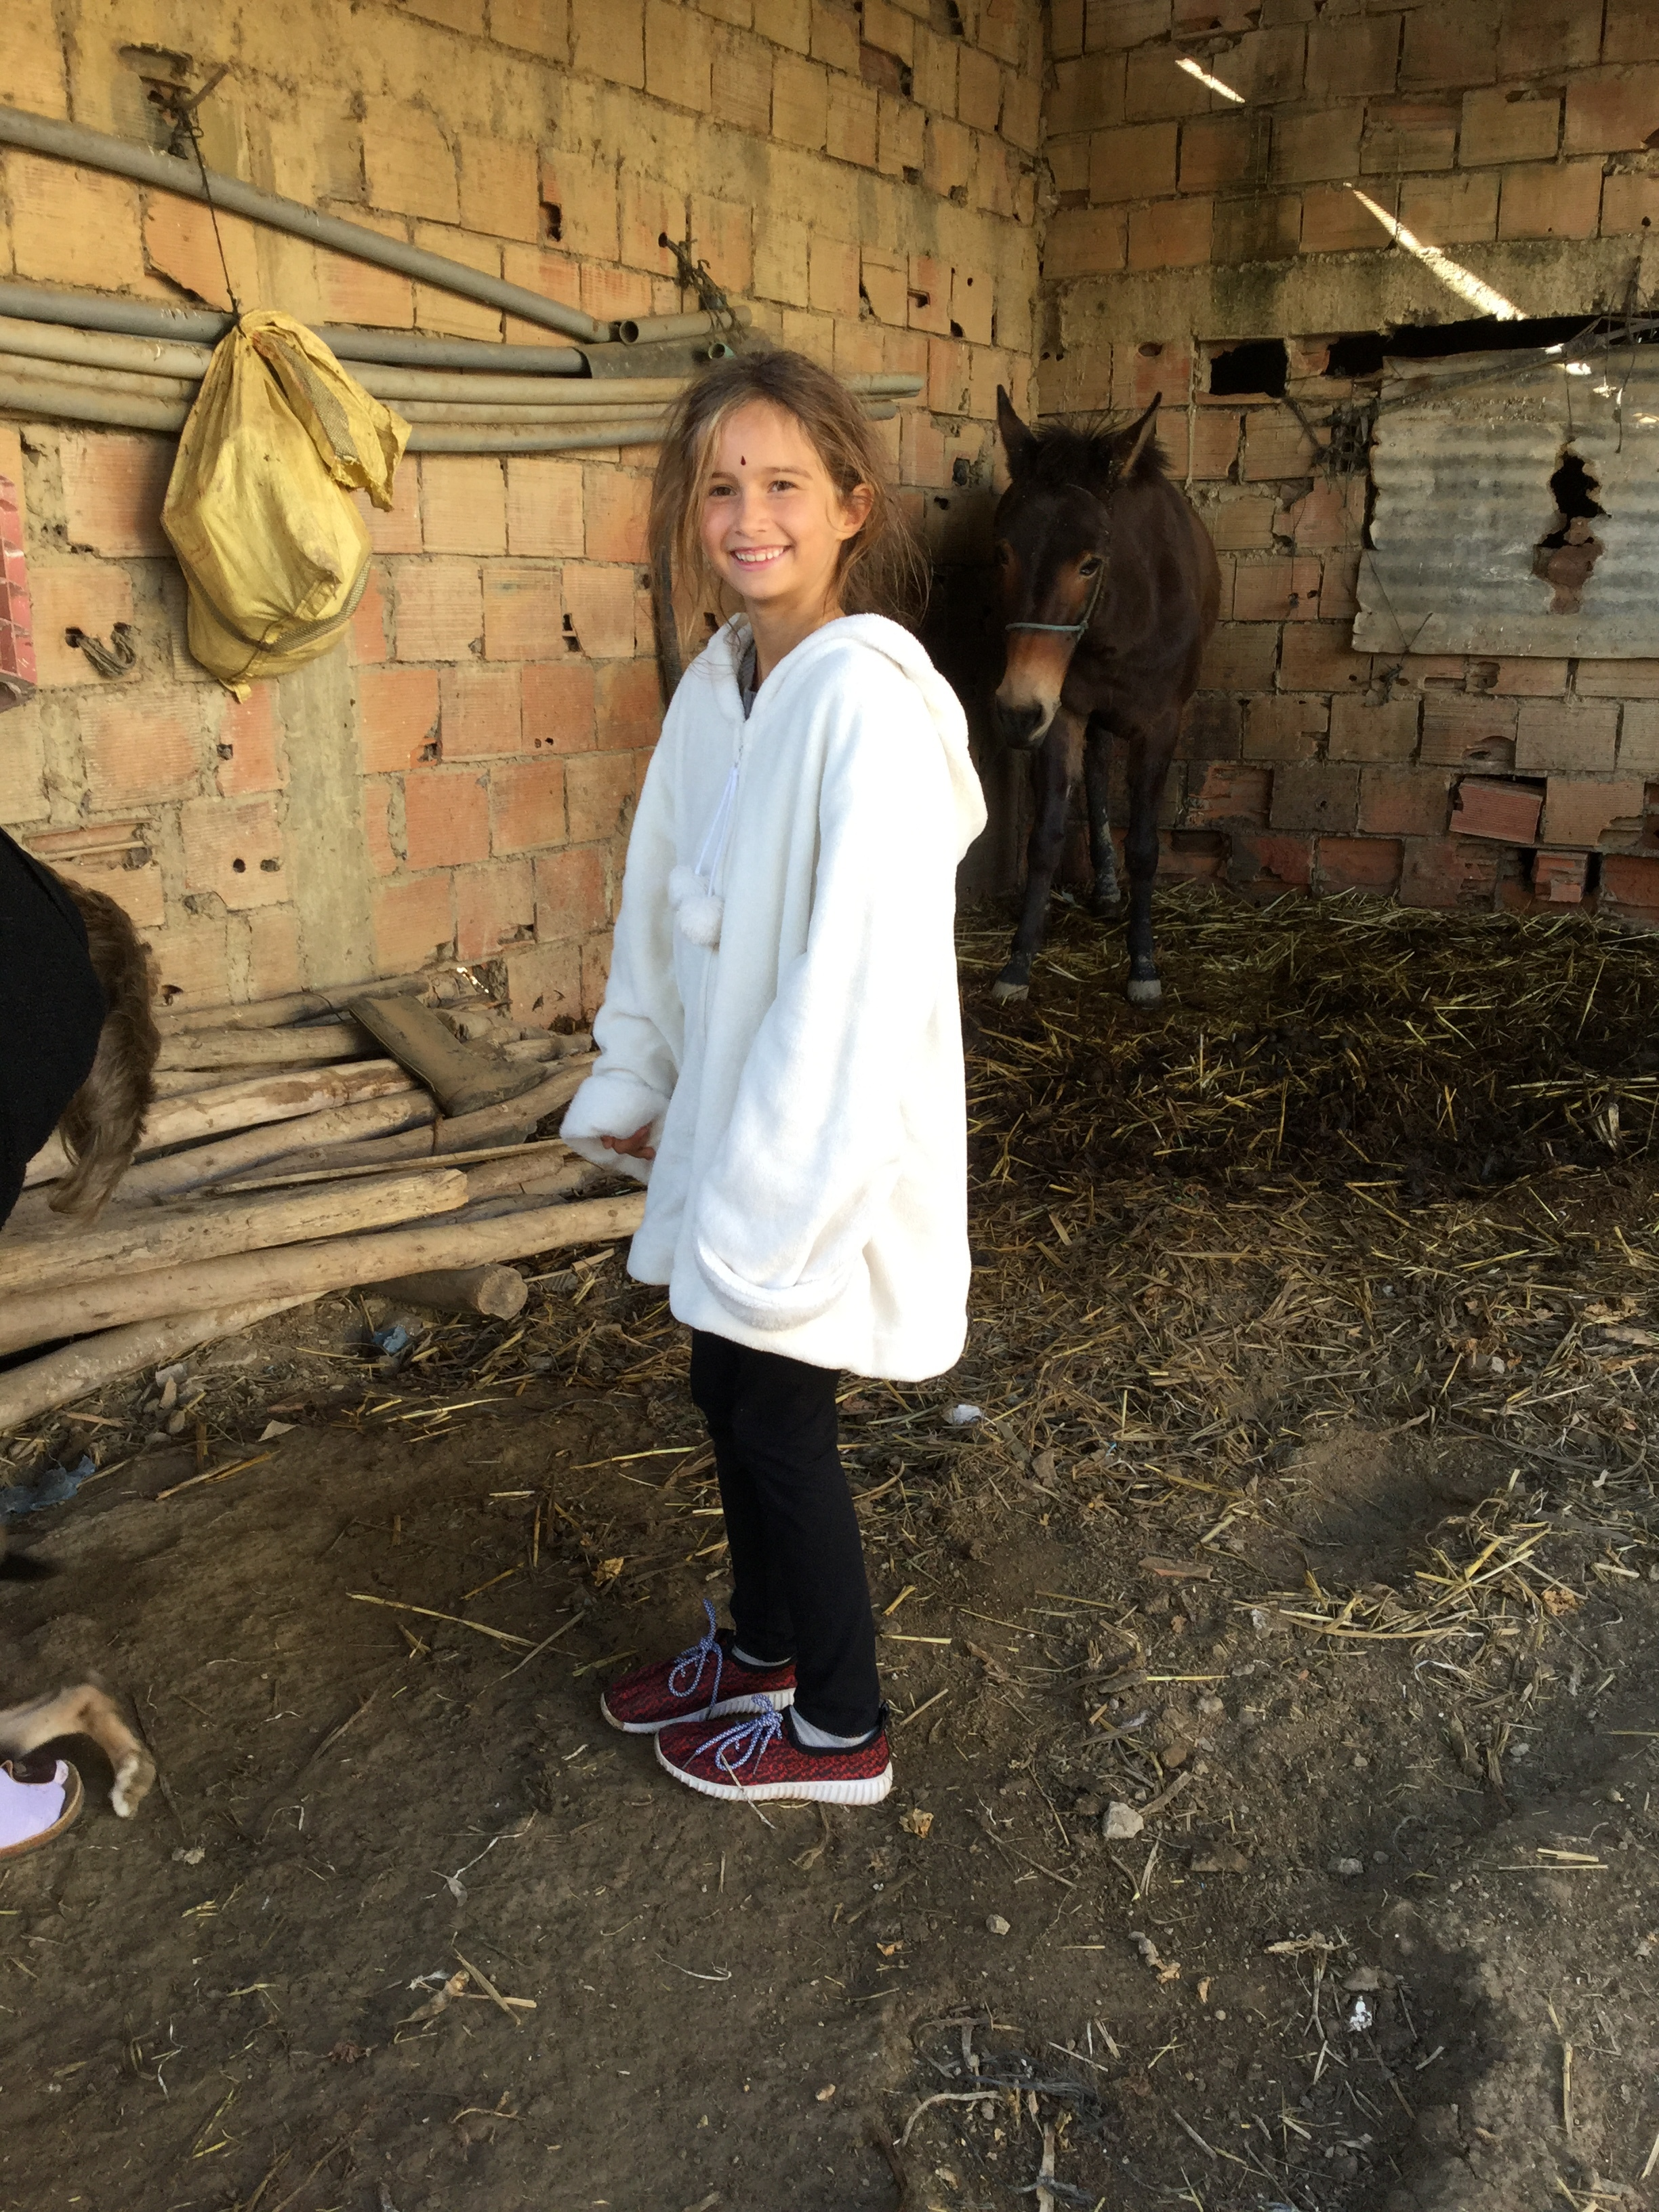 No need to say that Lili will love any place that has animals - here is the household donkey. There were also five cows and about ten chickens running around.